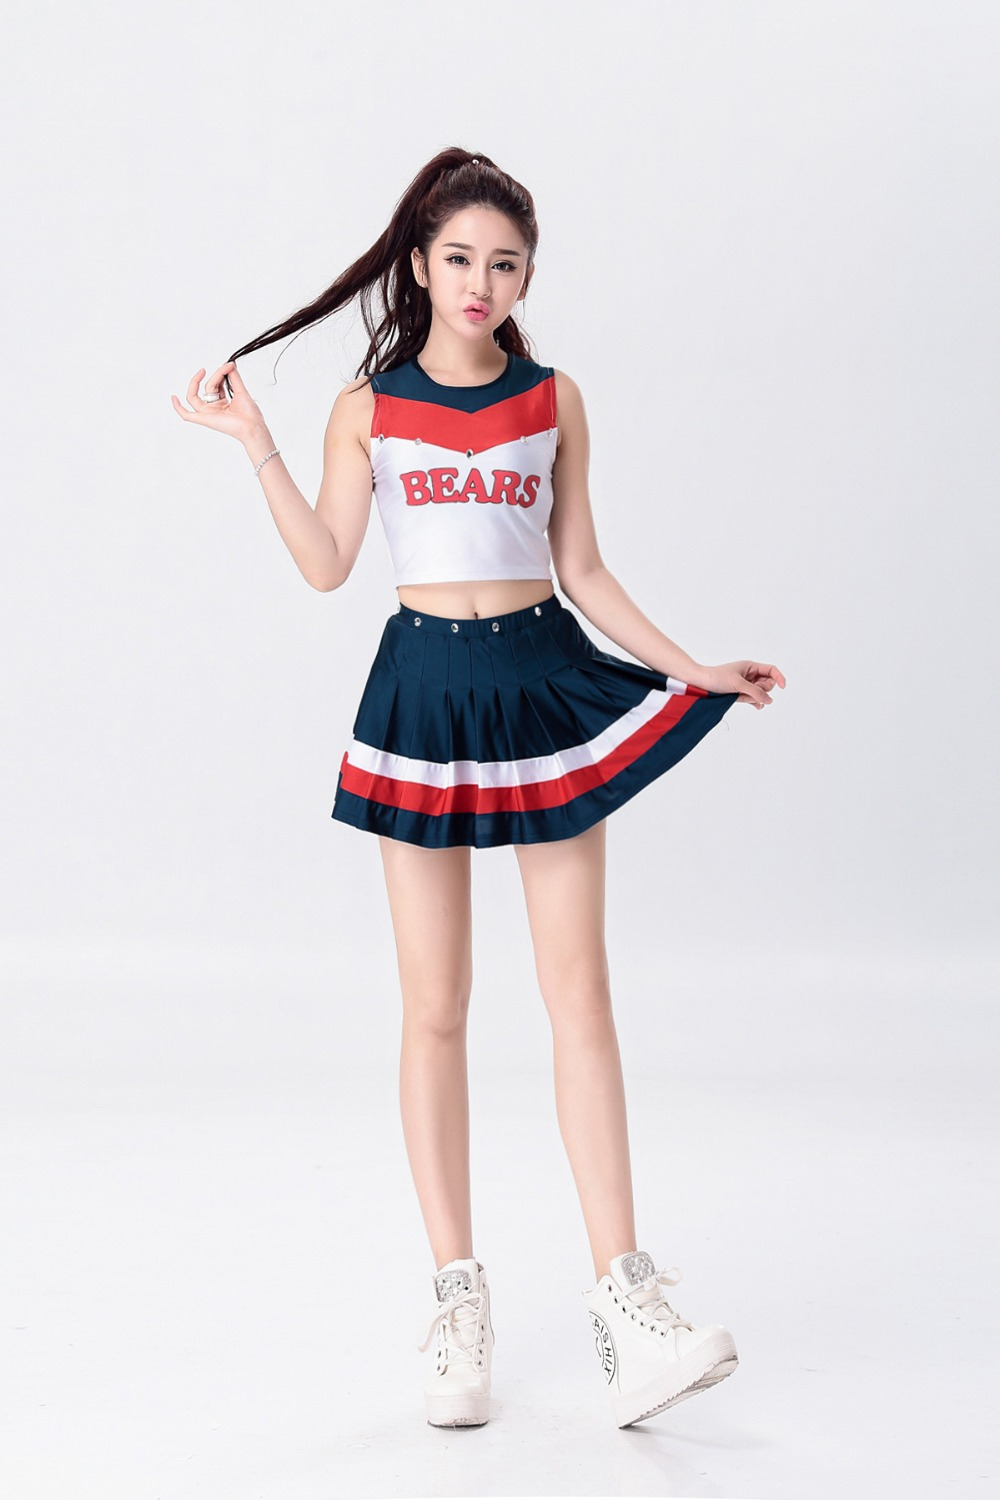 Hot Sale! Cheerleaders Clothing Groups Kids School Cheerleaders Girls Aerobics Costumes Competition School Uniform Dress Skirt